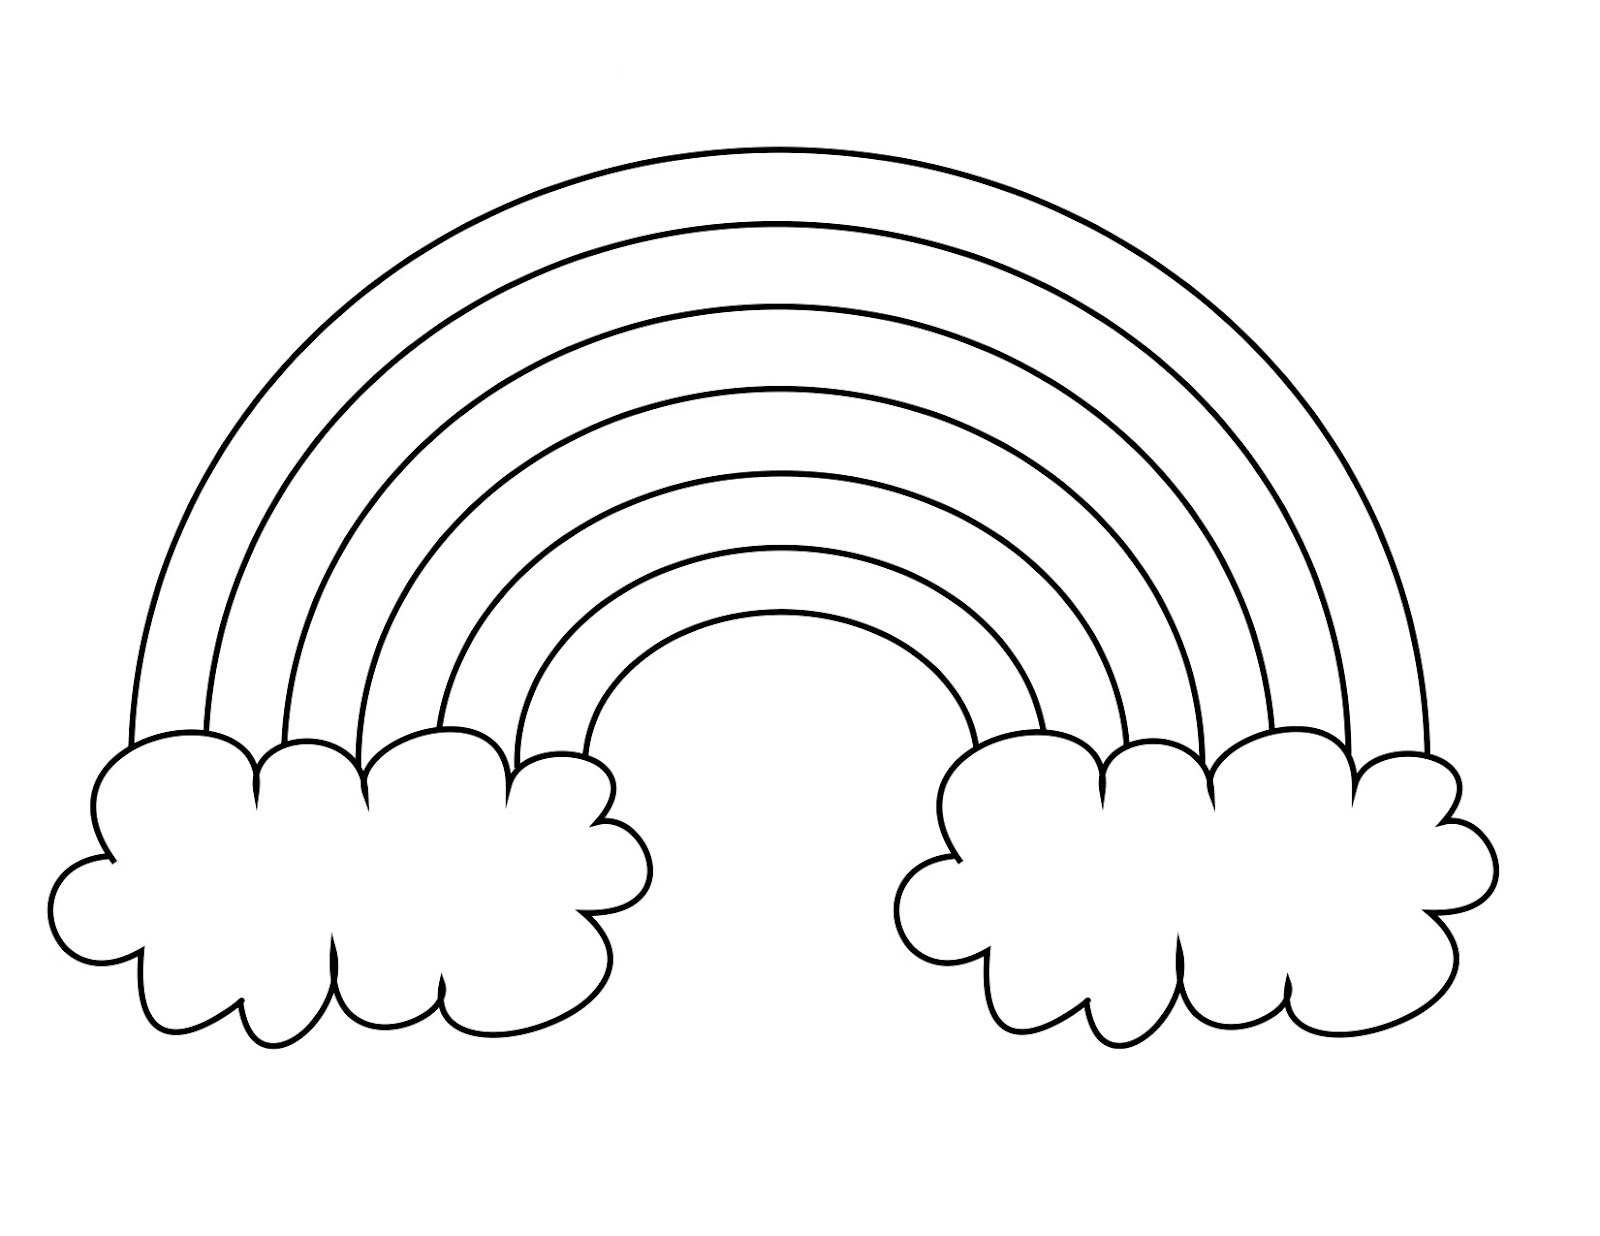 rainbow coloring pages for kid - photo#1